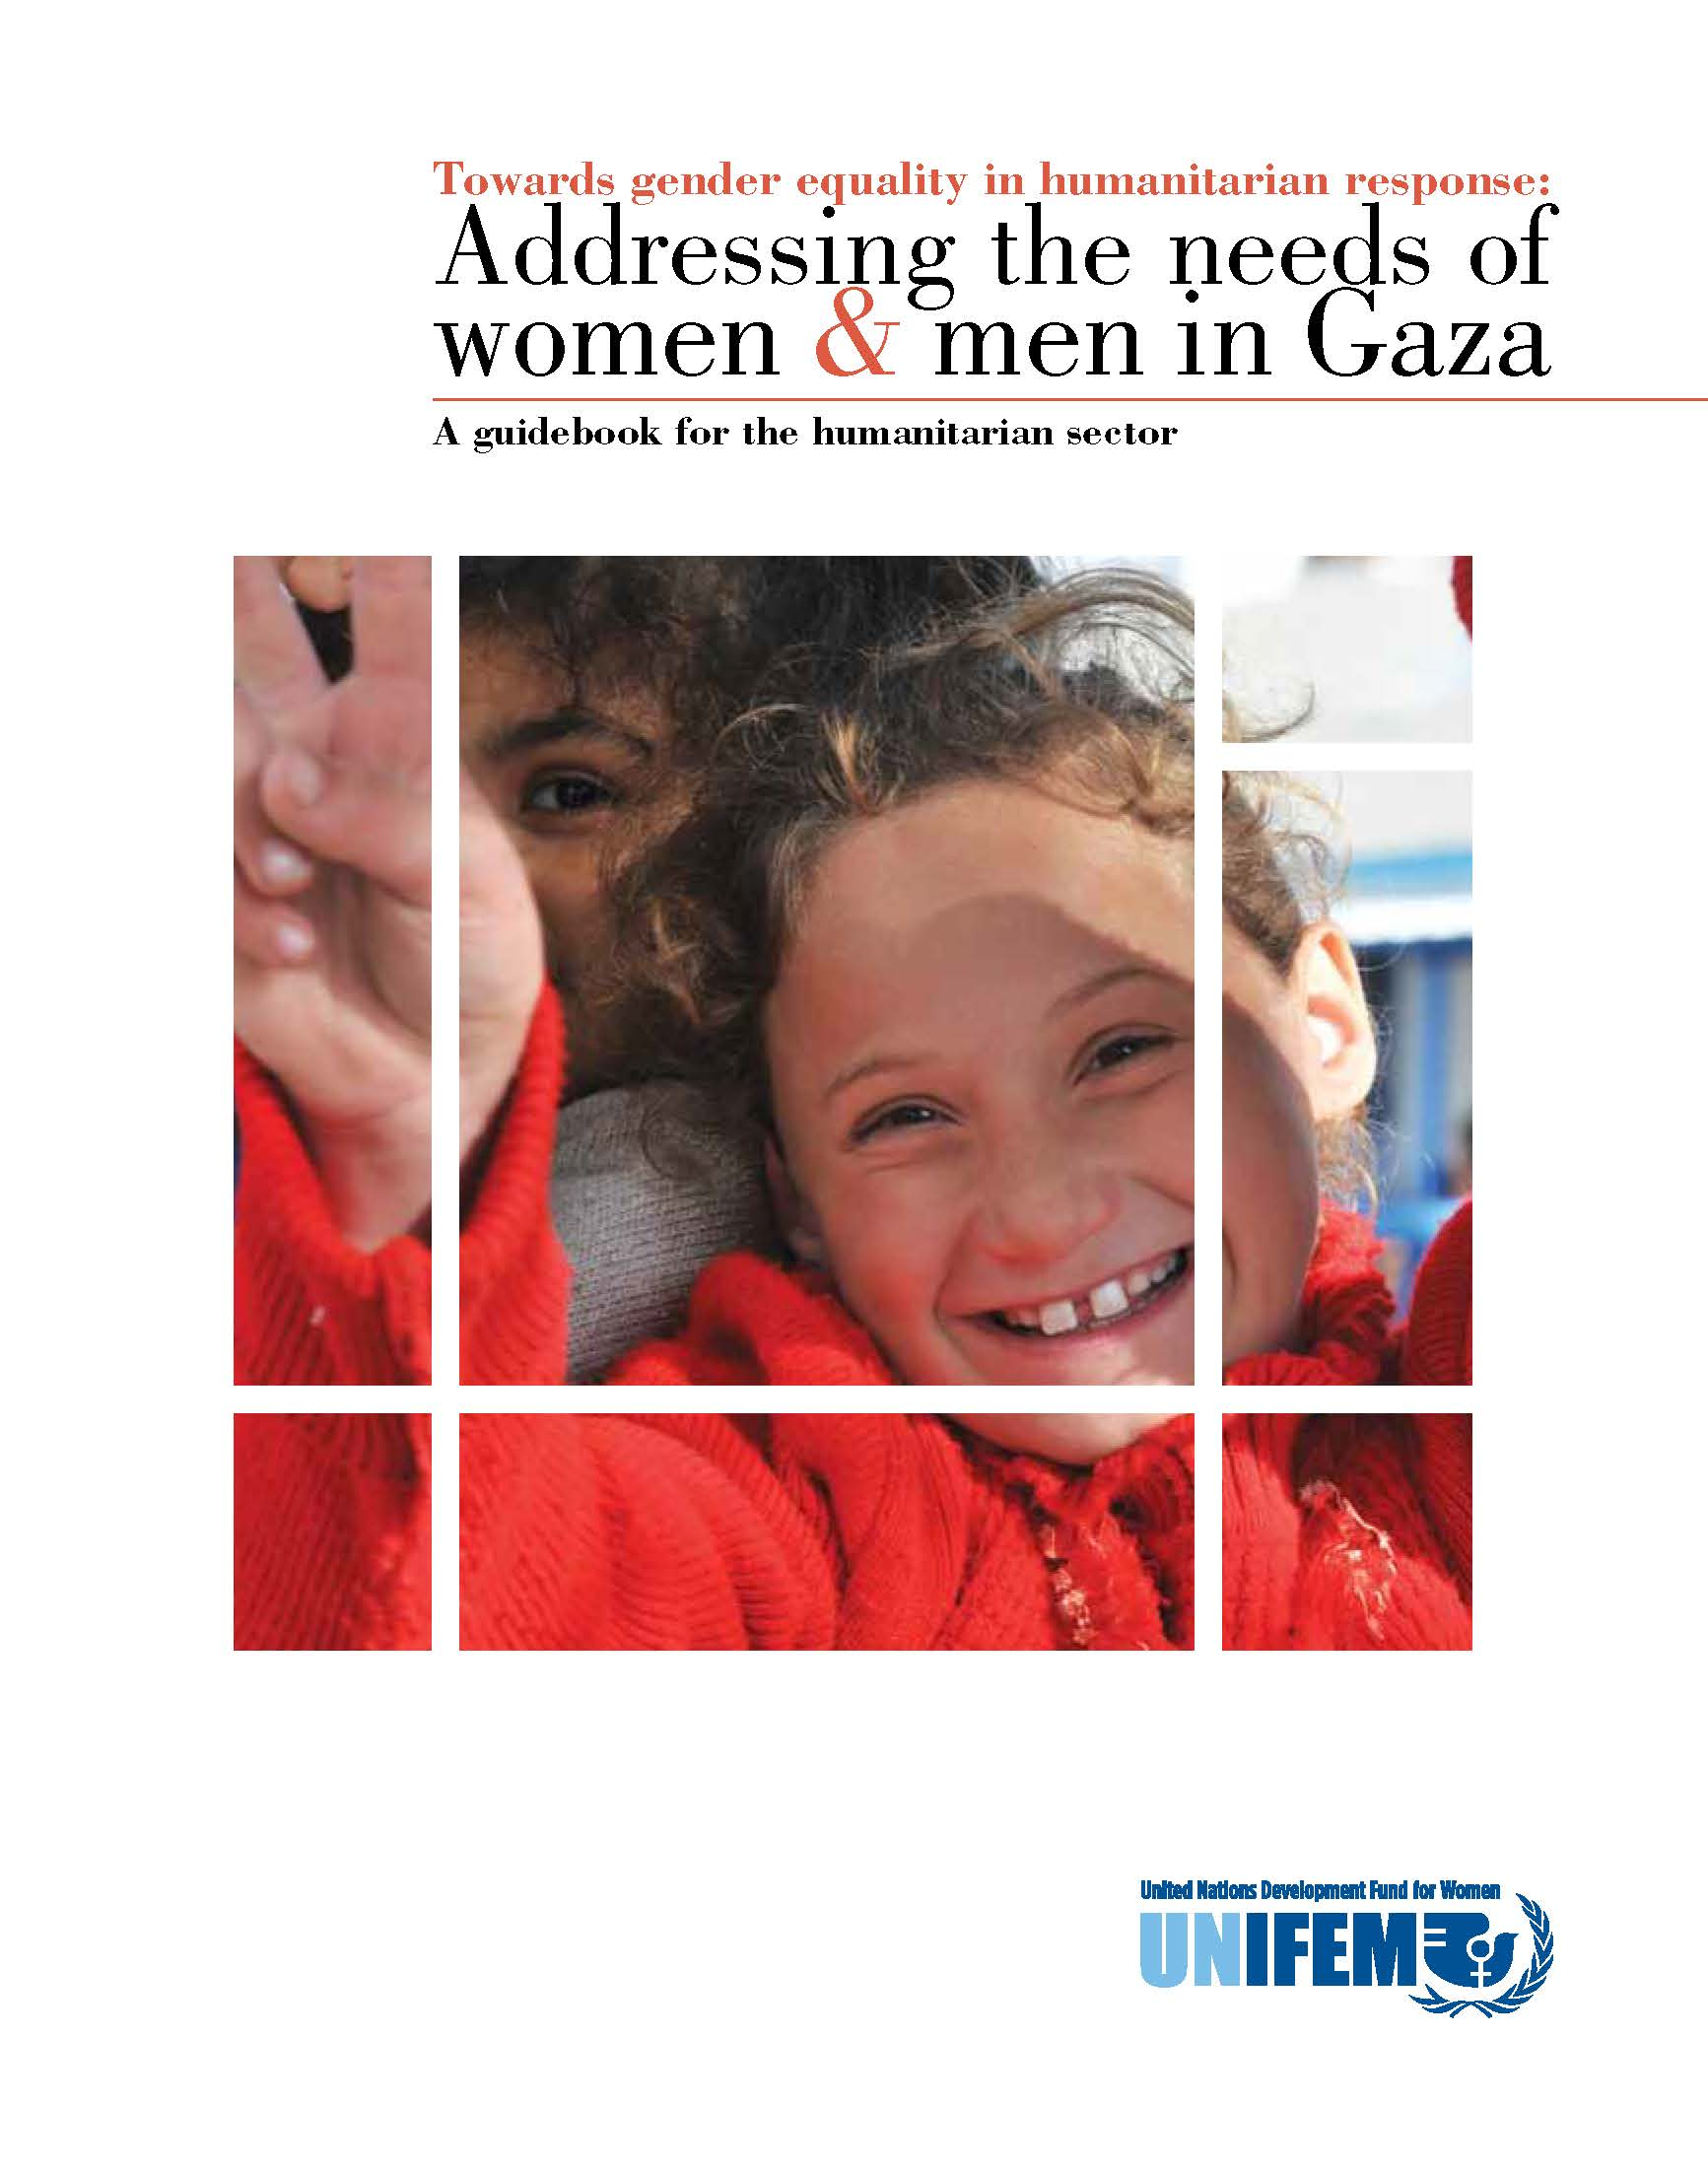 Addressing the needs of women and men in Gaza